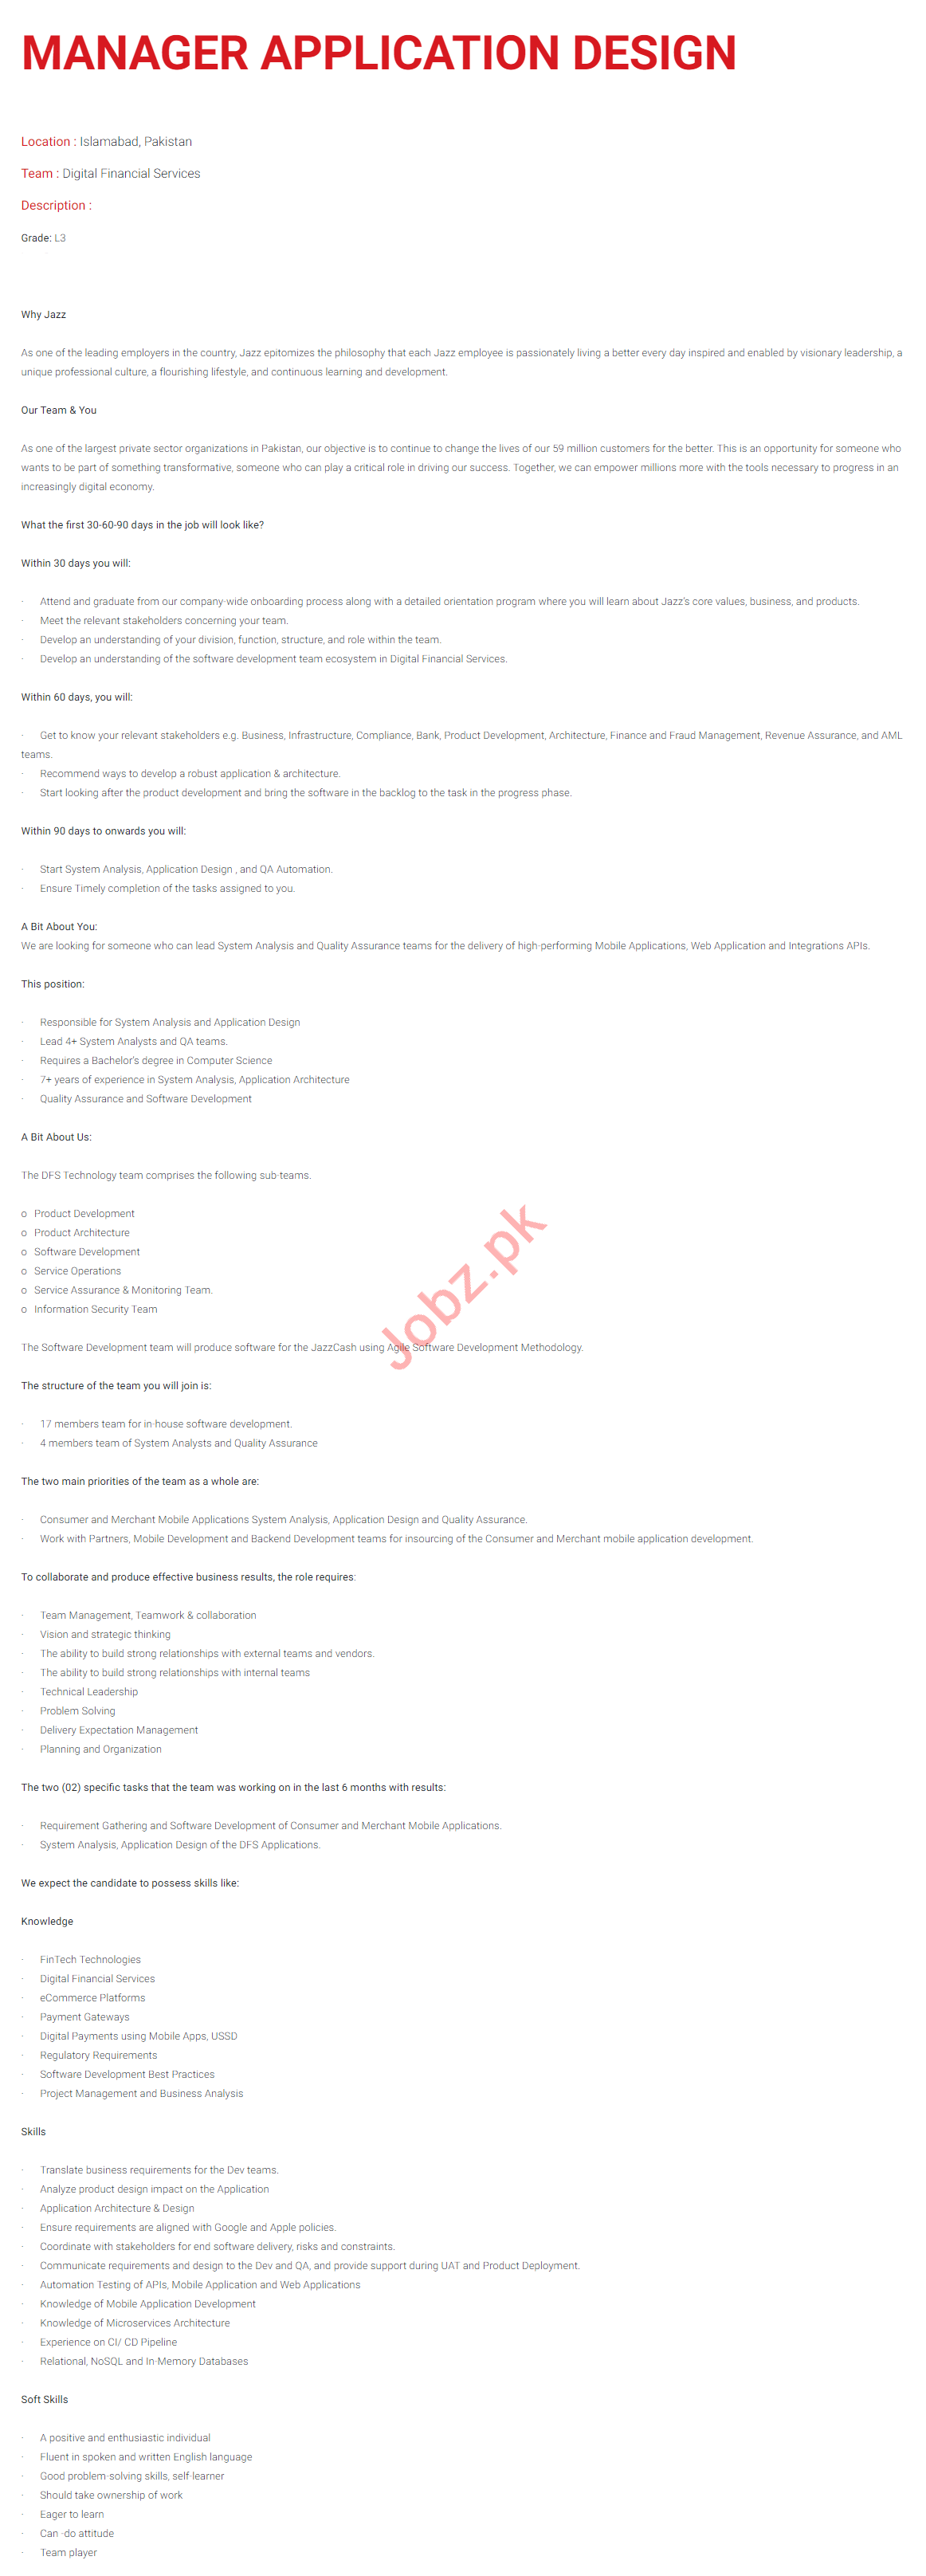 Manager Application Design Jobs 2020 in Islamabad